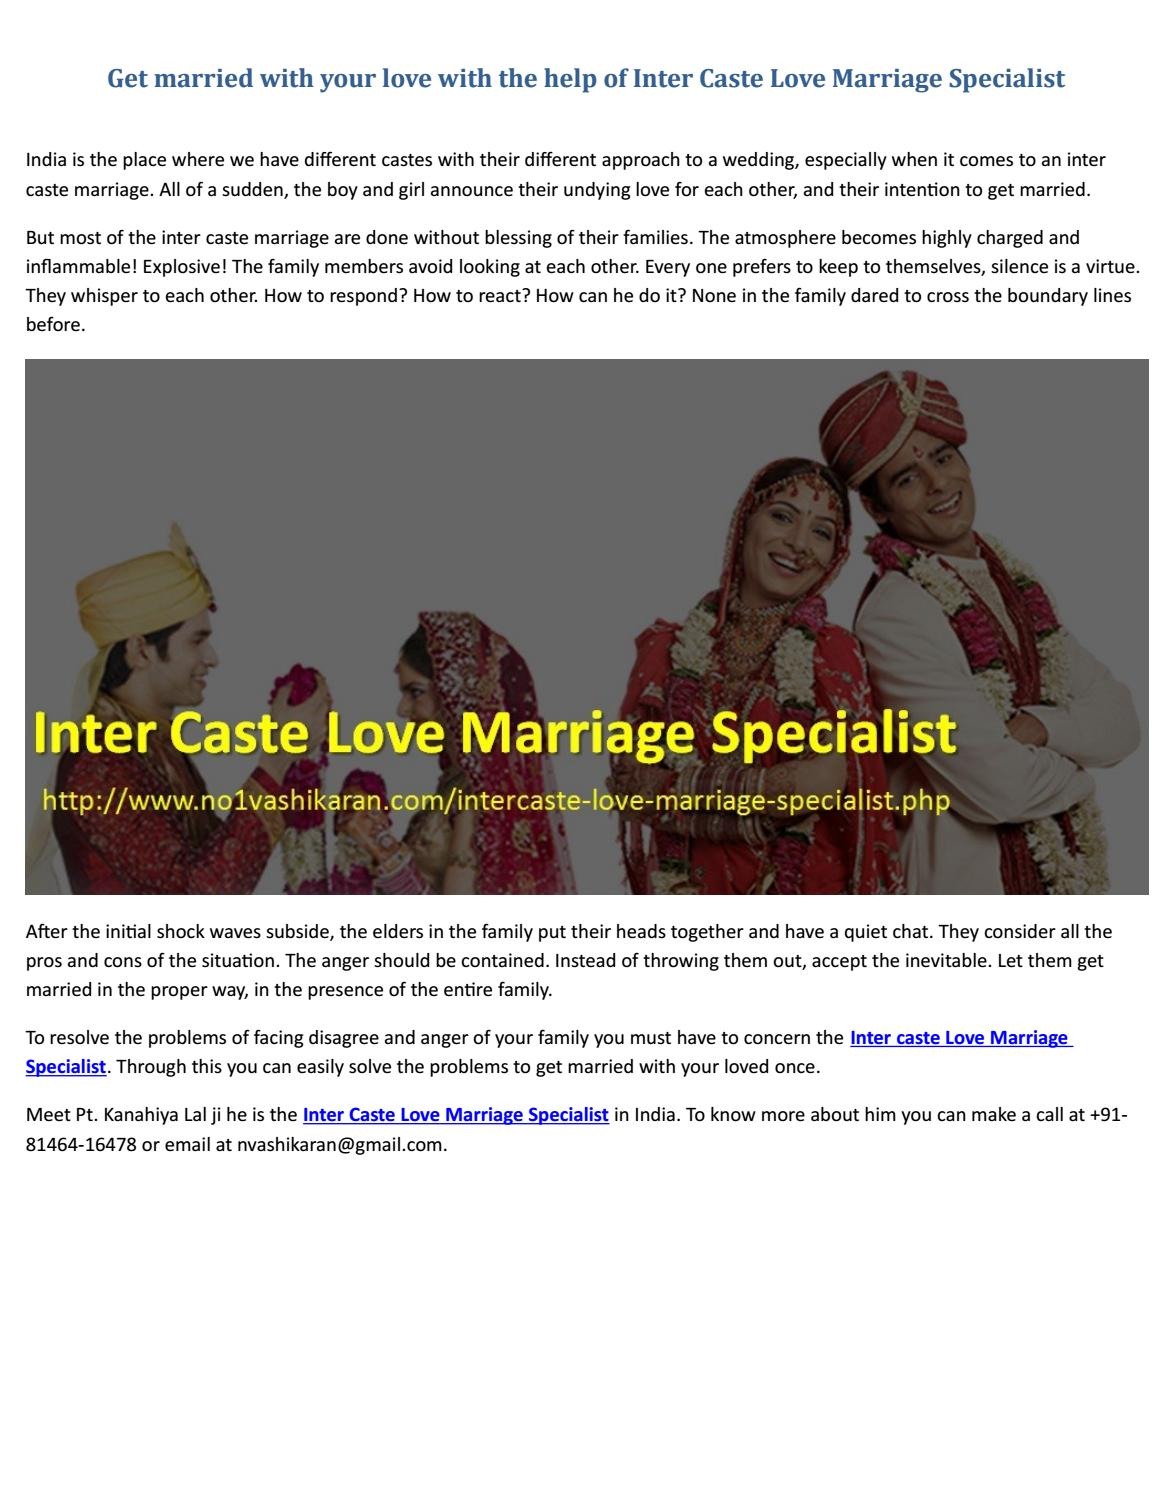 Get married with your love with the help of inter caste love get married with your love with the help of inter caste love marriage specialist by no1 vashikaran specialist pt kanahiya lal ji issuu ccuart Image collections